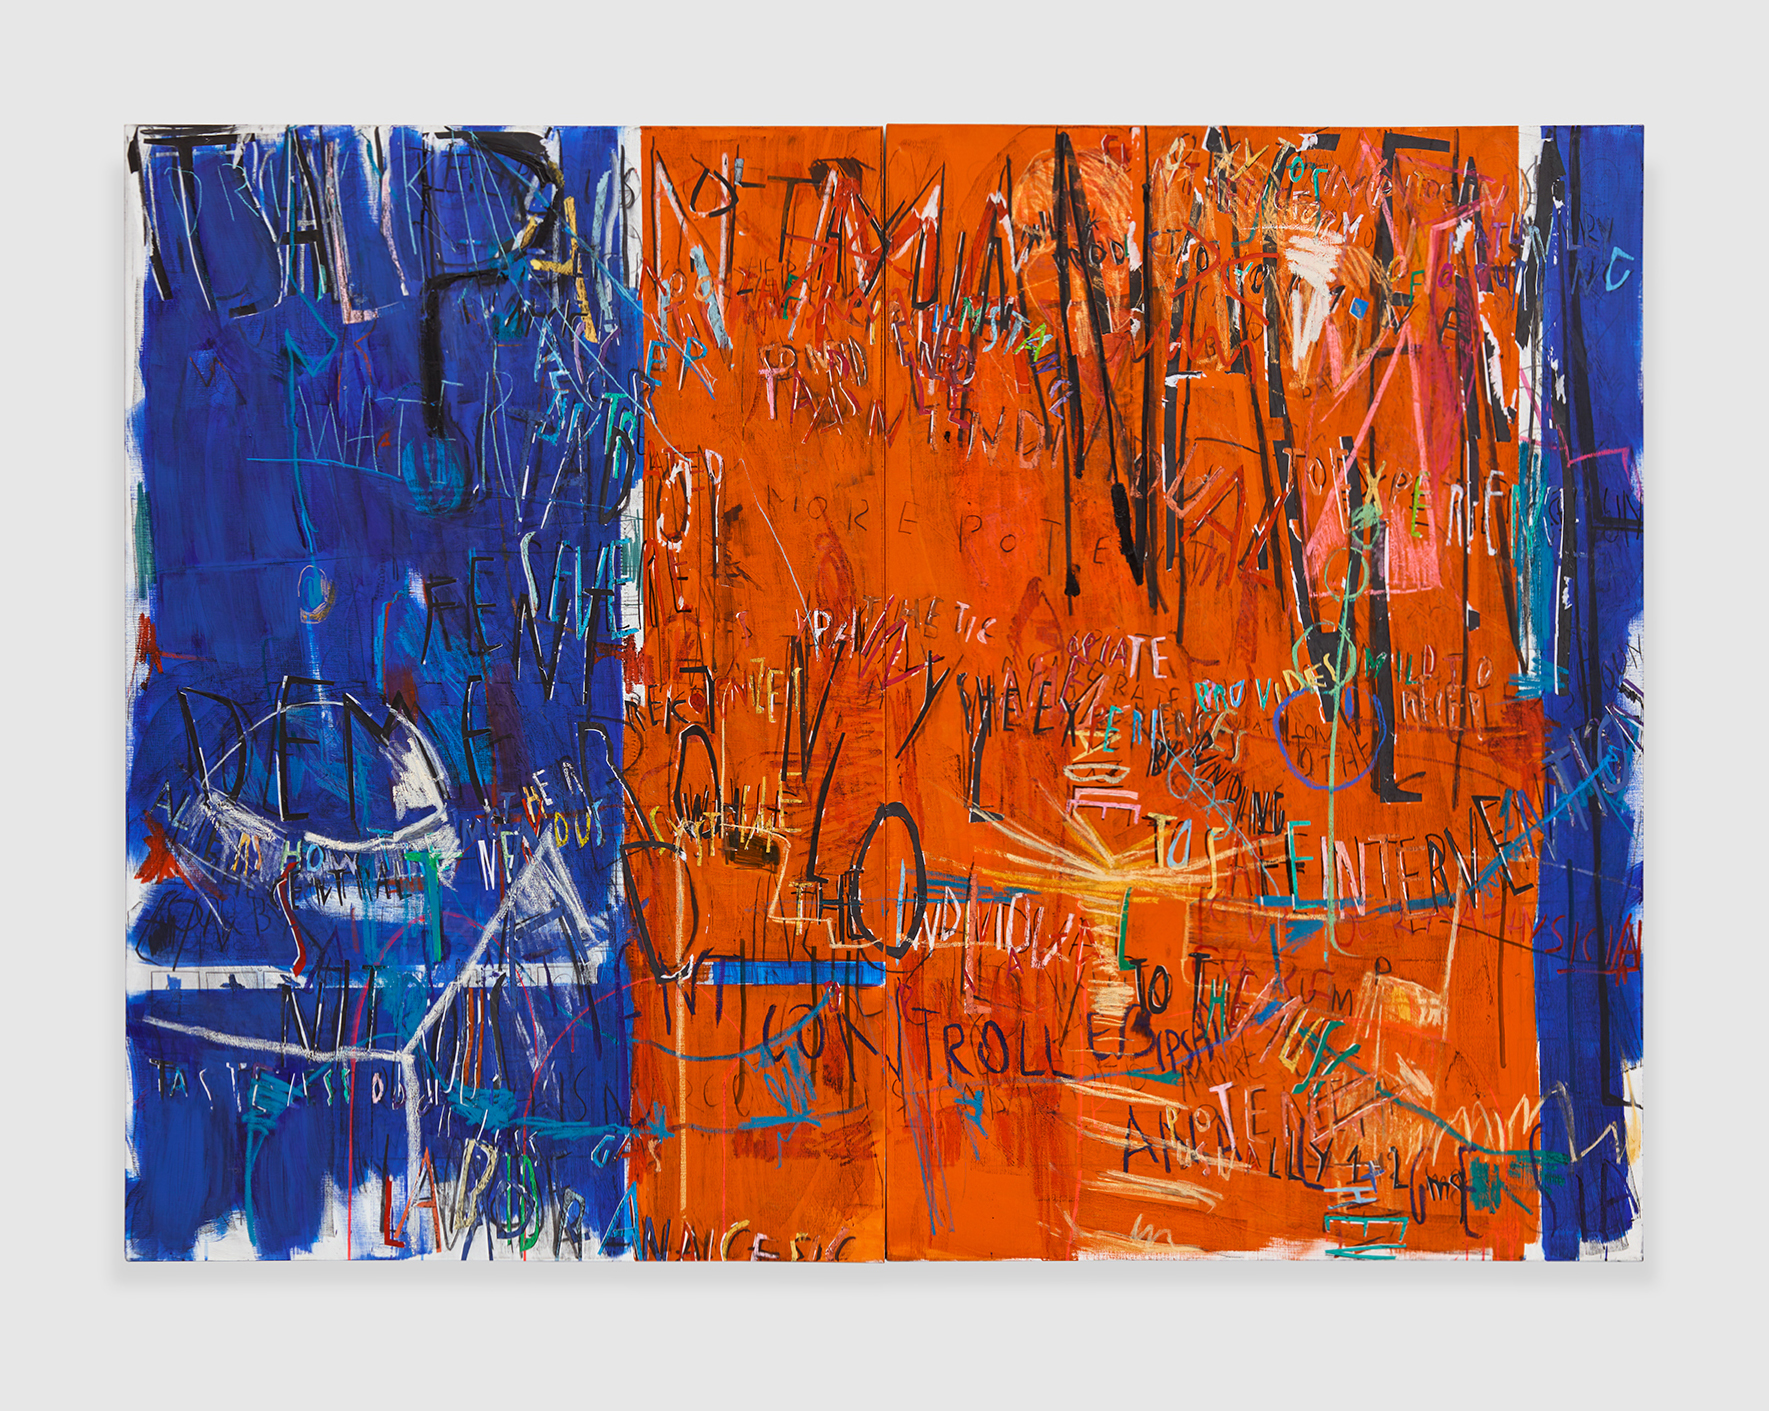 """""""It Is All Pain Management"""" , 2018 acrylic, marker, oil stick, oil, charcoal and paper collage on linen, diptych 72 x 48 in -182,9 x 121,9 cm"""